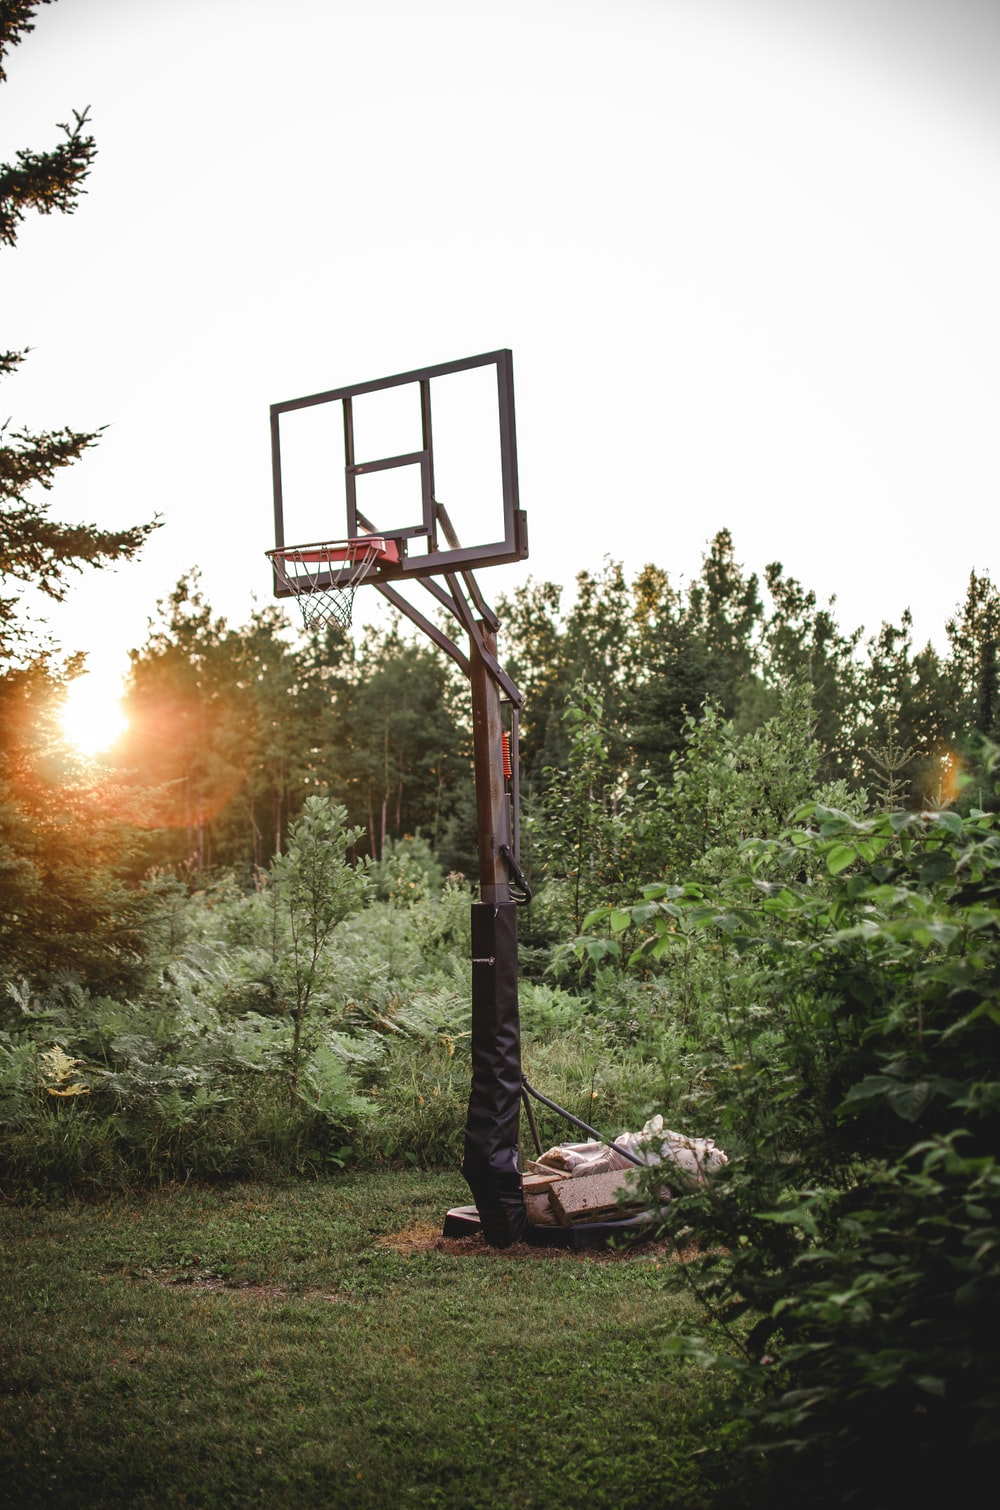 Backyard basketball pictures - Backyard Basketball Pictures Download Free Images On Unsplash